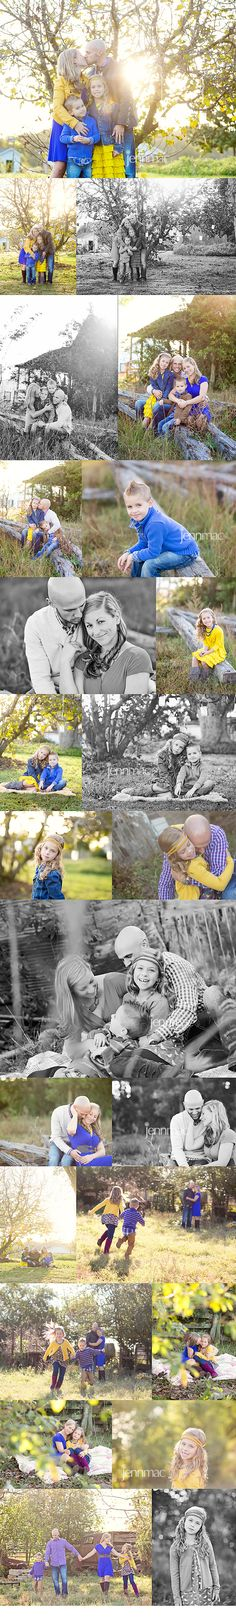 what to wear - families - family outfit inspiration blue, yellow